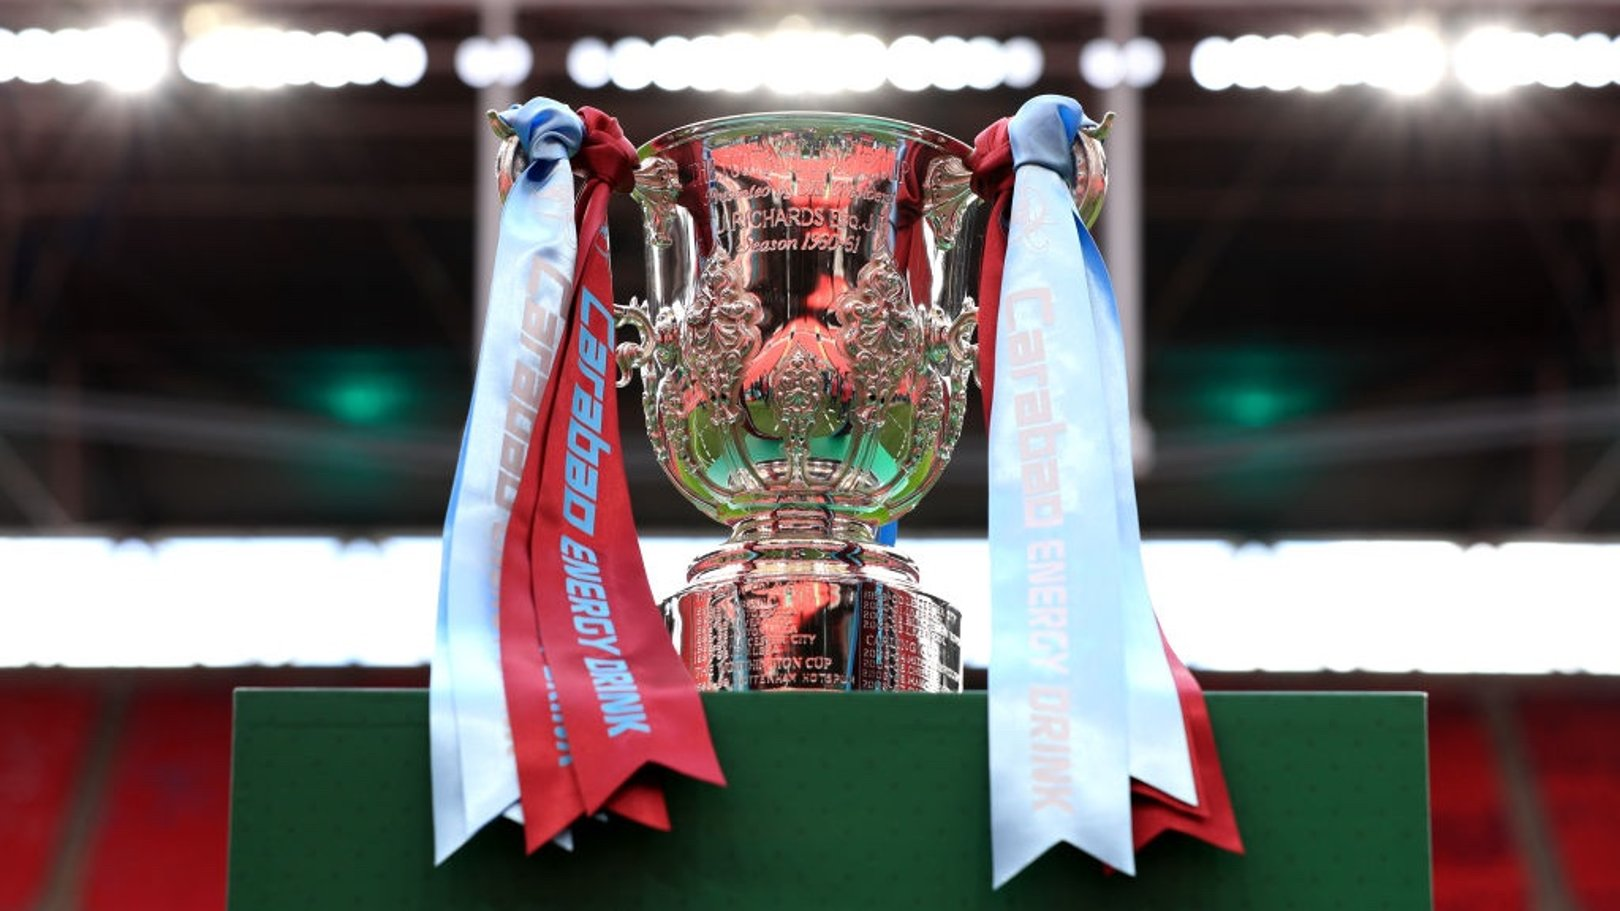 UP FOR THE CUP: The Carabao Cup trophy glistens